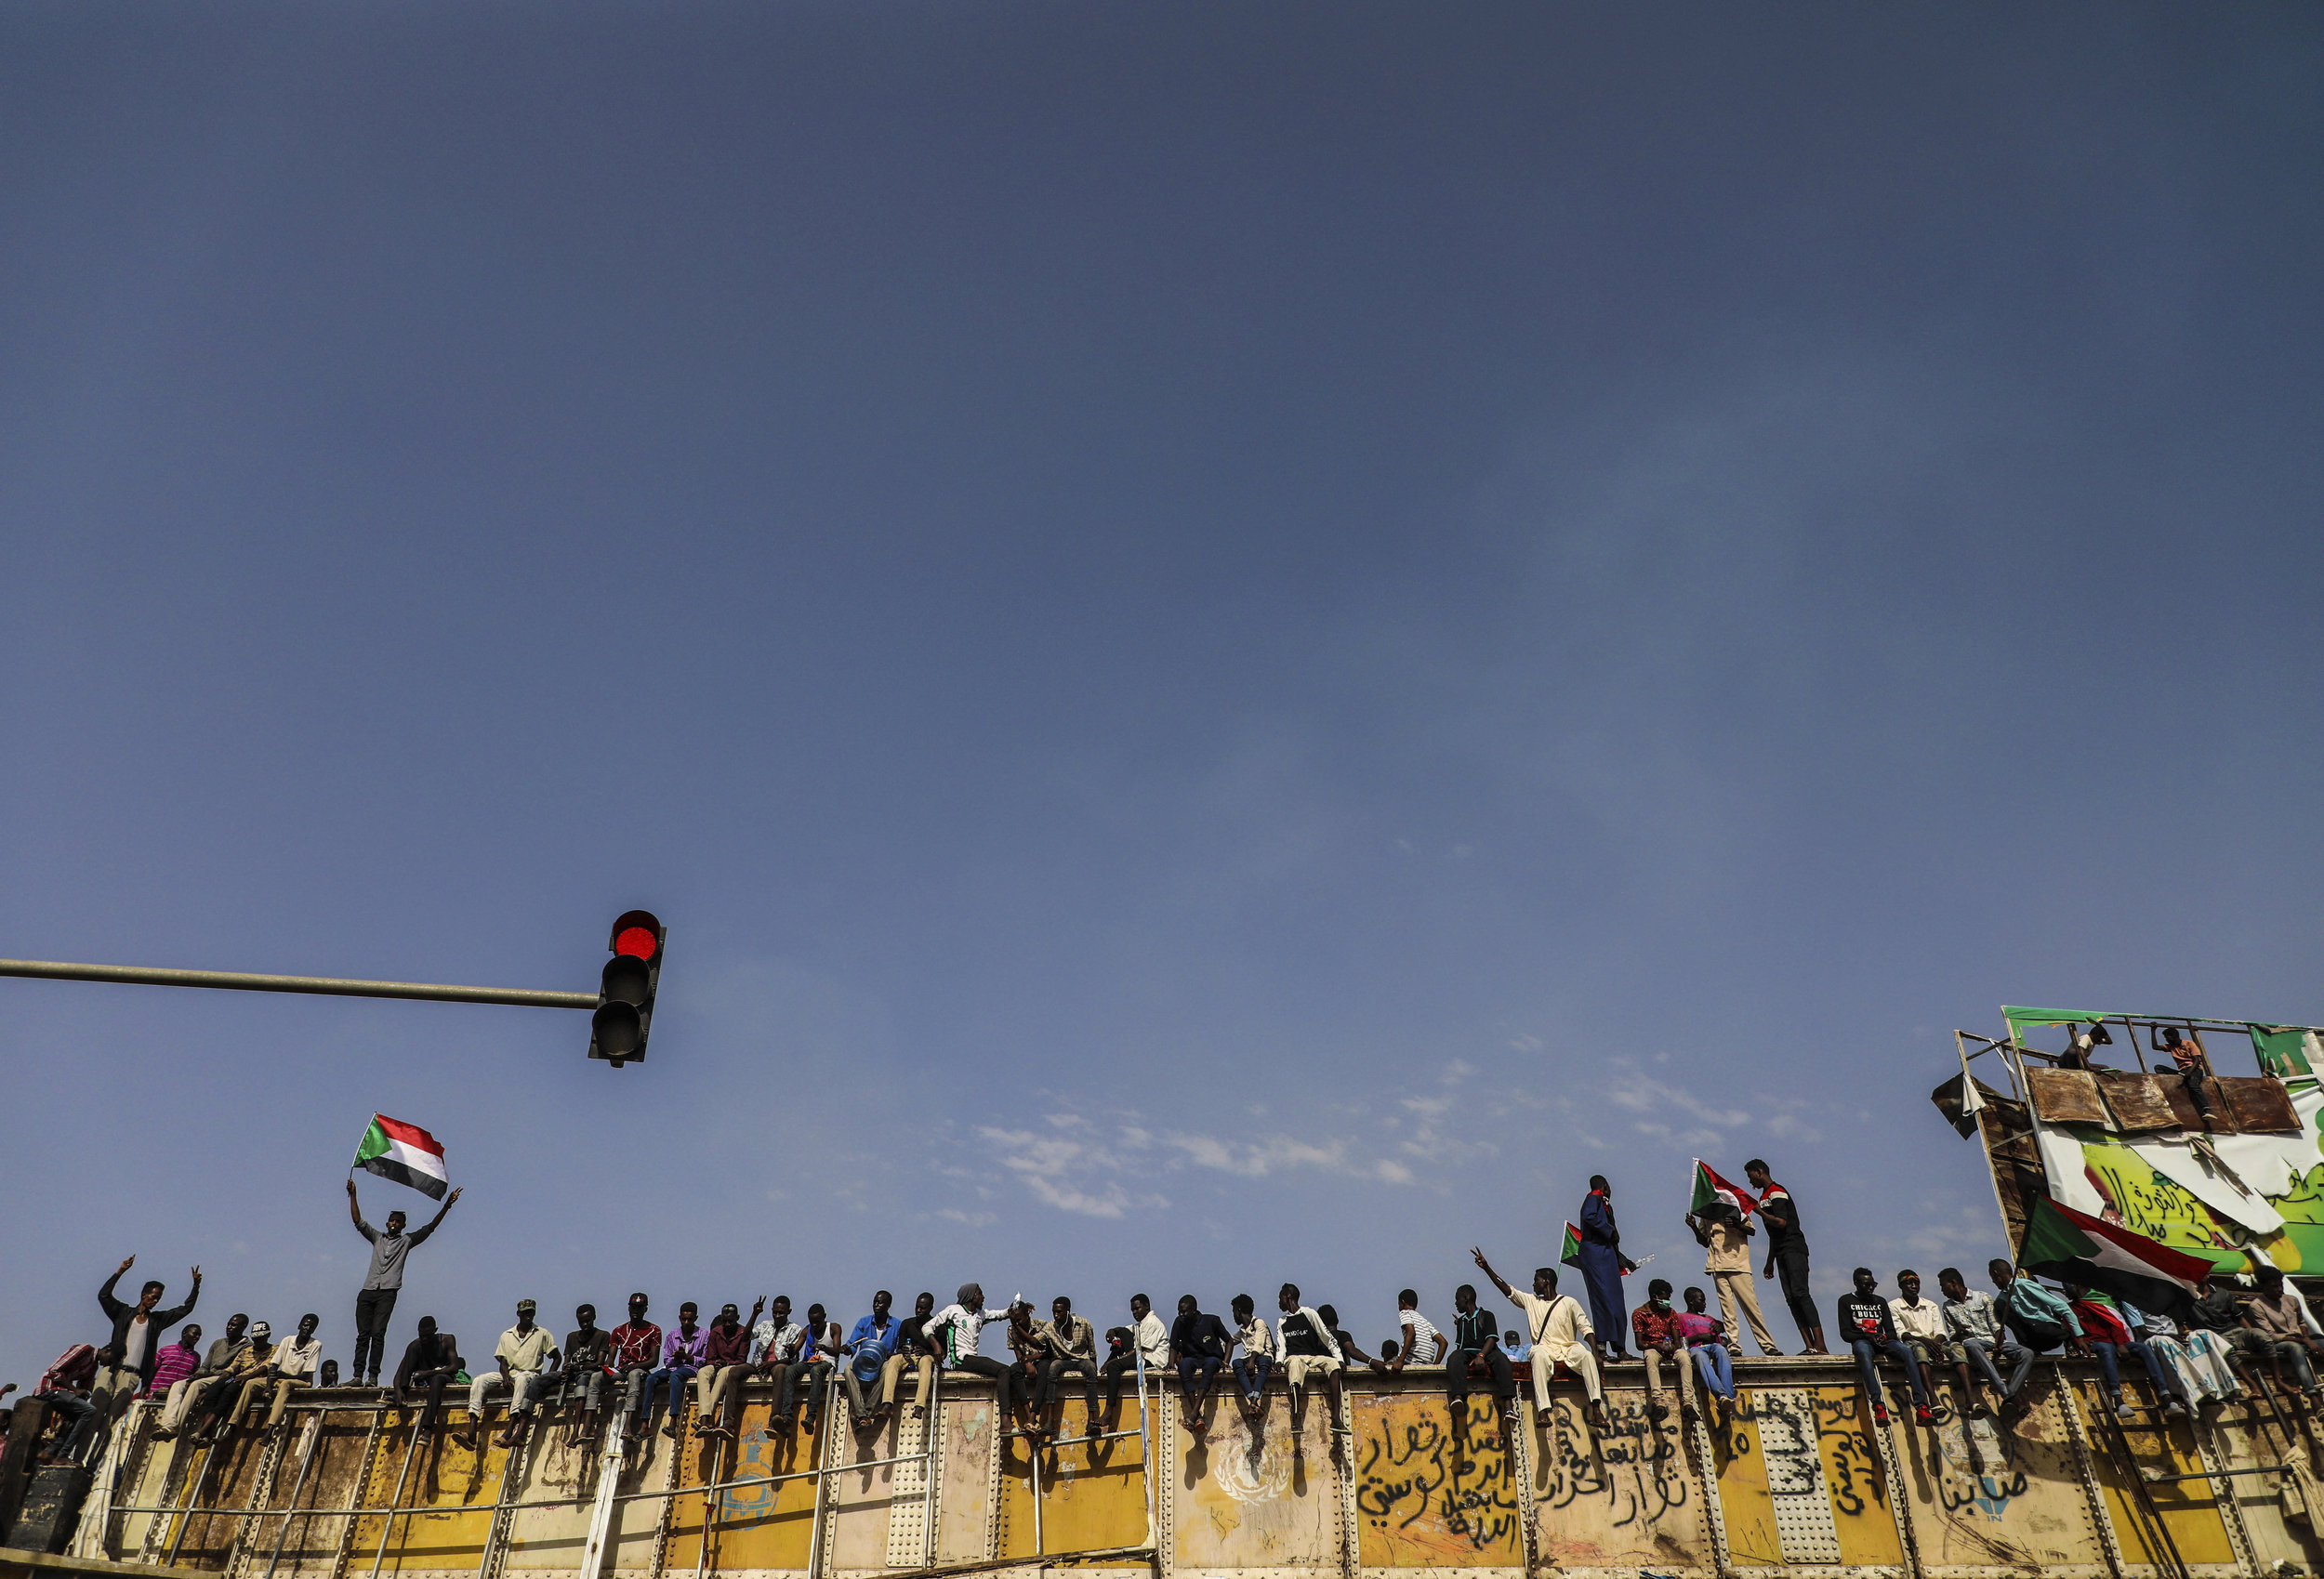 Sudanese protesters rally in the capital Khartoum on Friday, April 26, 2019. (AP Photo)